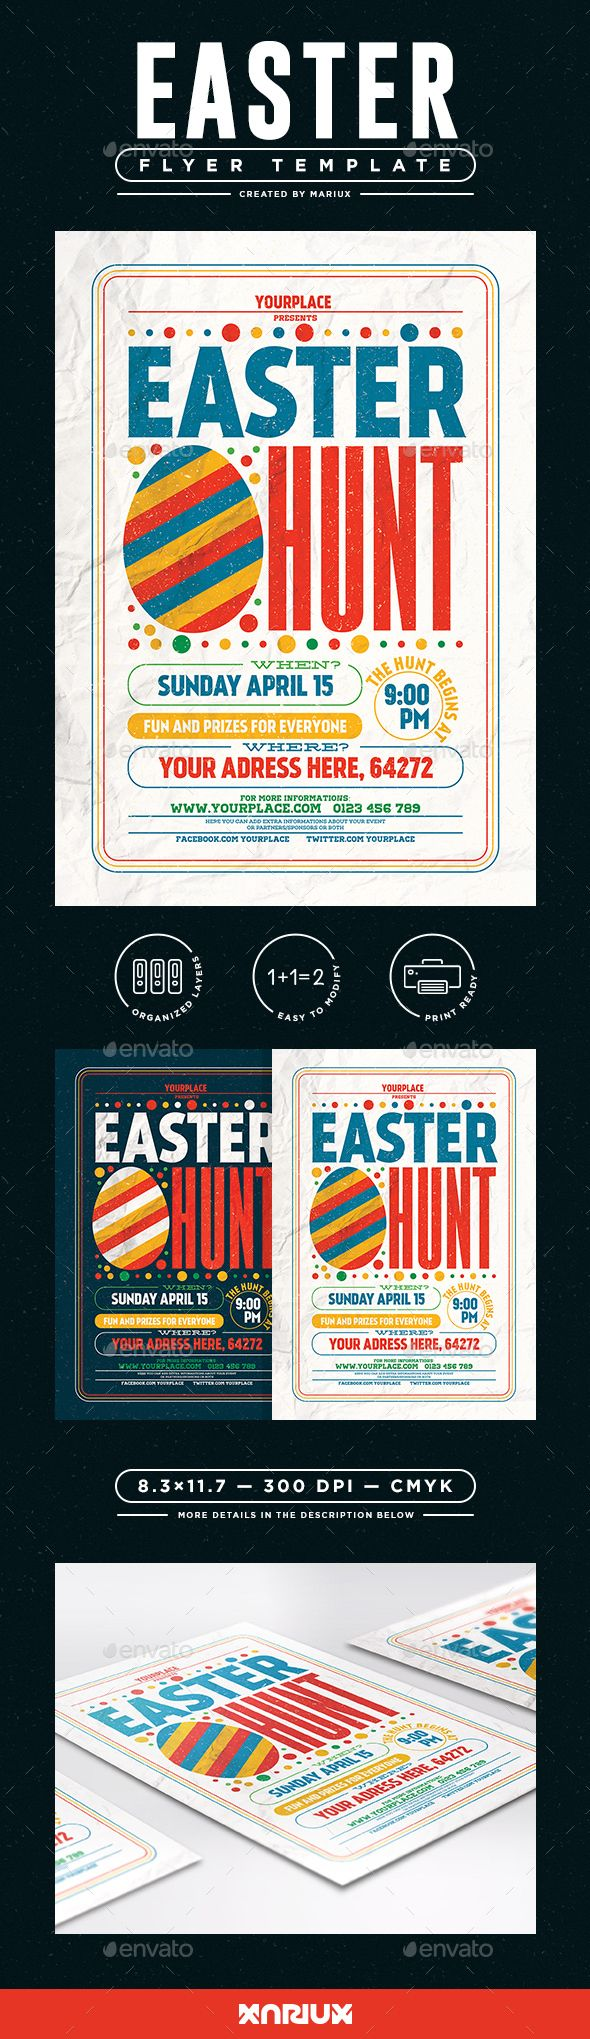 Easter Egg Hunt Flyer/Poster   #celebration, #colourful, #easter, #easter egg hunt, #Easter Egg Hunt Flyer, #easter egg hunt poster, #easter flyer, #easter poster, #egg hunt, #egg hunt flyer, #event, #flyer, #holiday, #poster, #print, #psd, #retro, #template, #texture, #typography, #typography flyer, #vintage